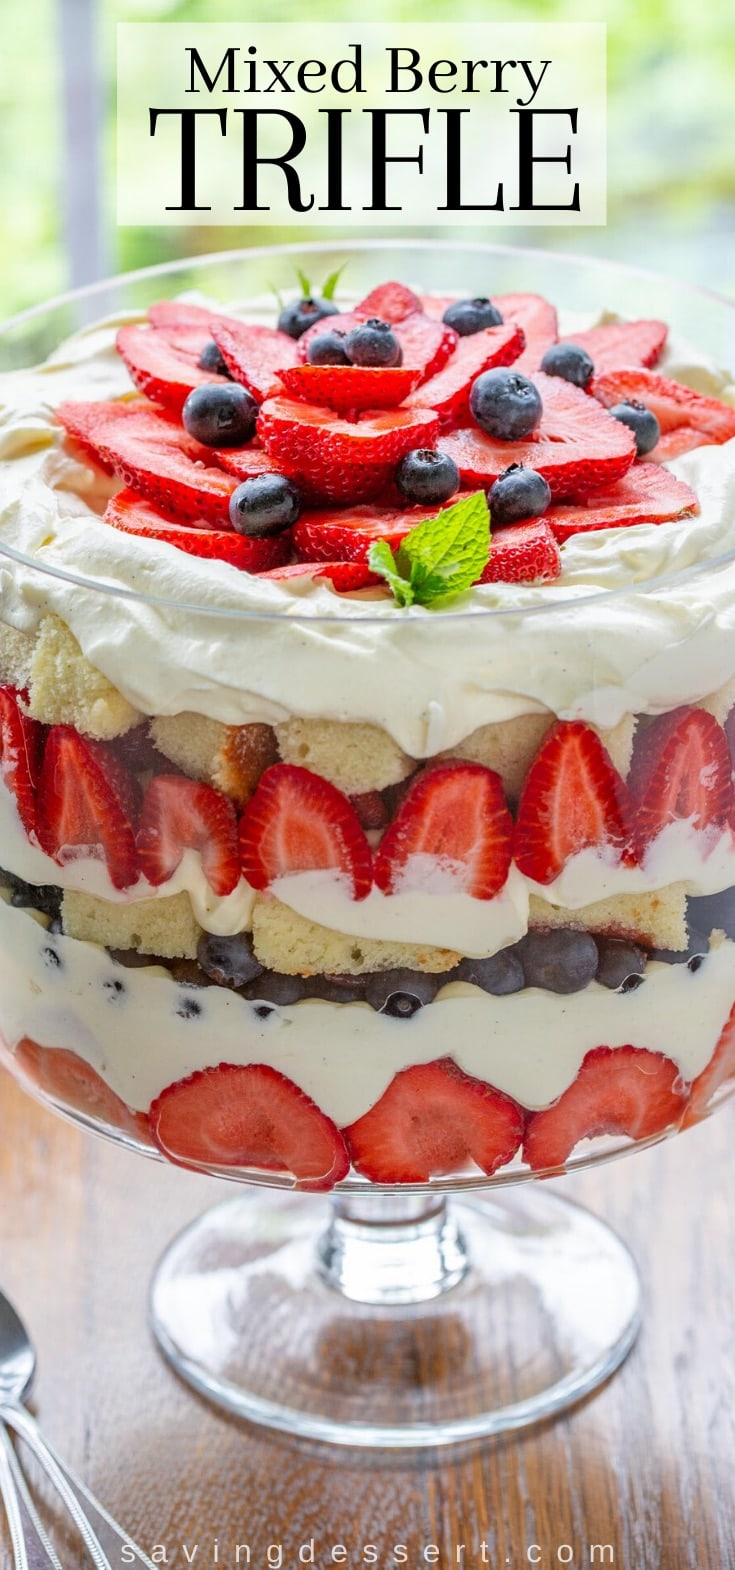 A trifle bowl filled with vanilla creamy, blueberries, strawberries and pound cake